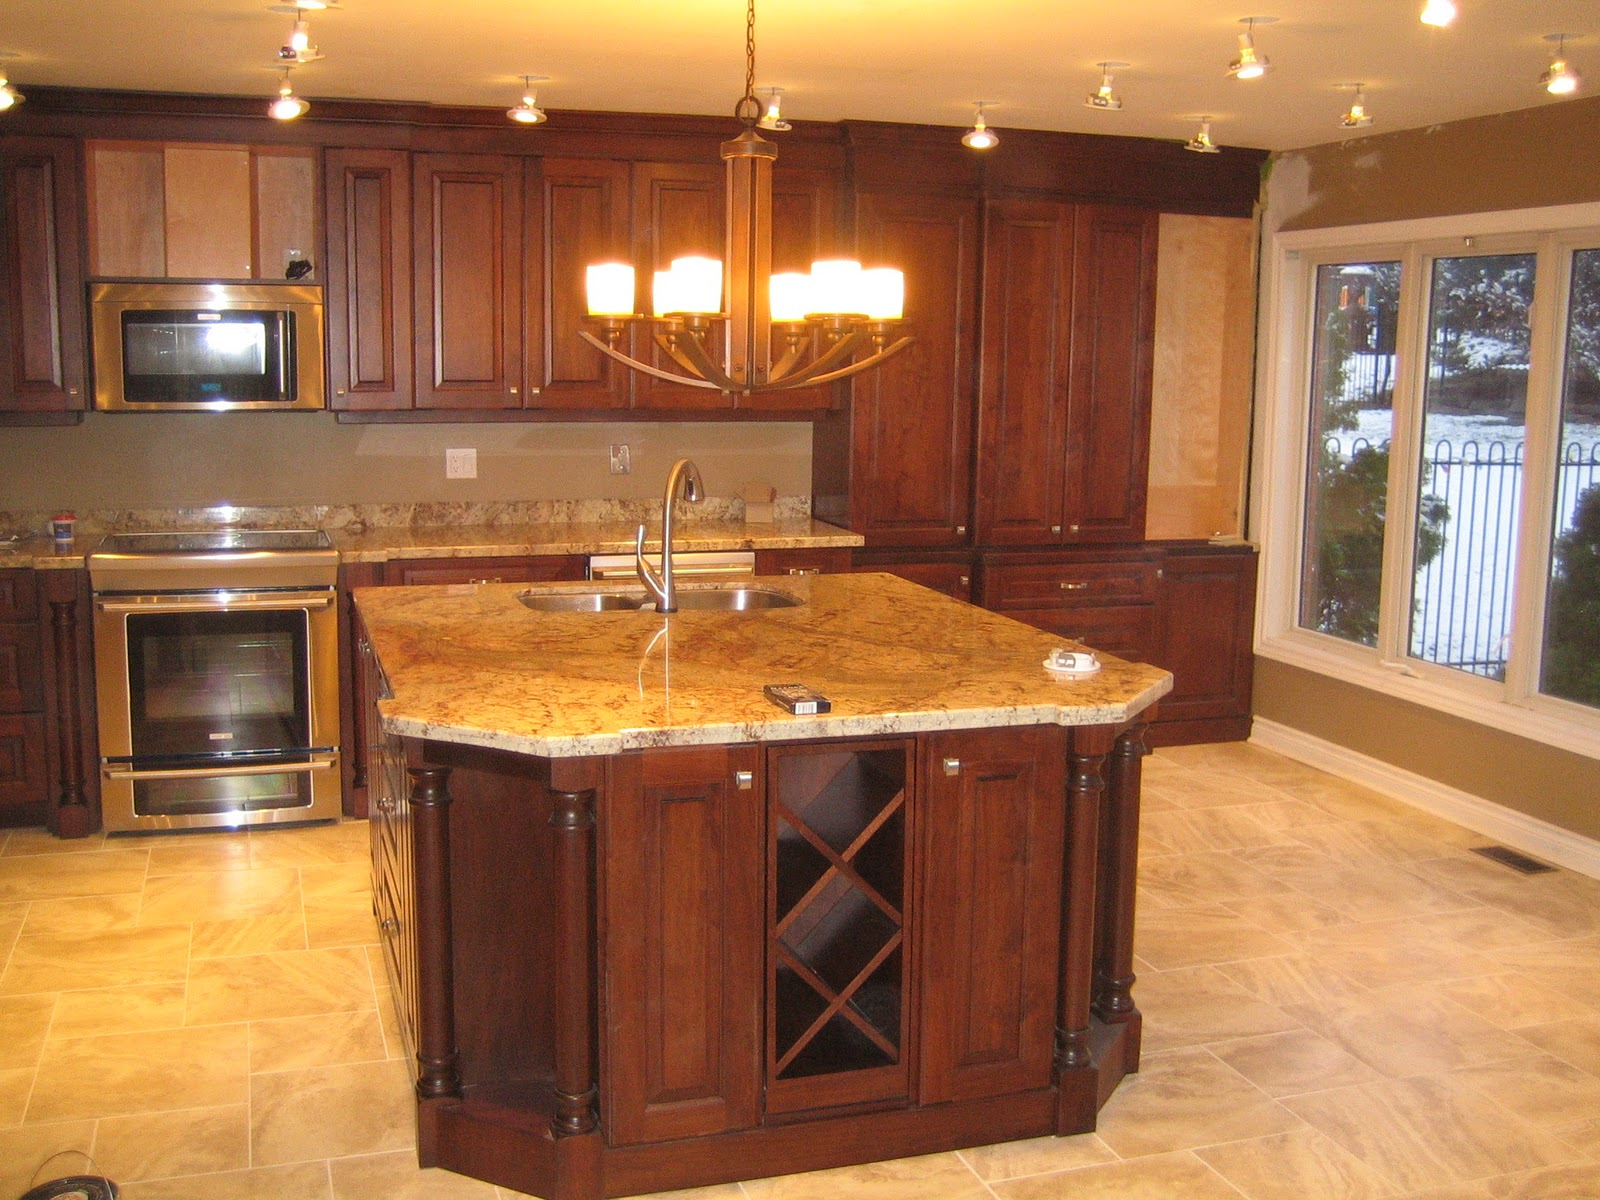 Walnut Kitchen Cabinets | work of tom ablett and brian ...